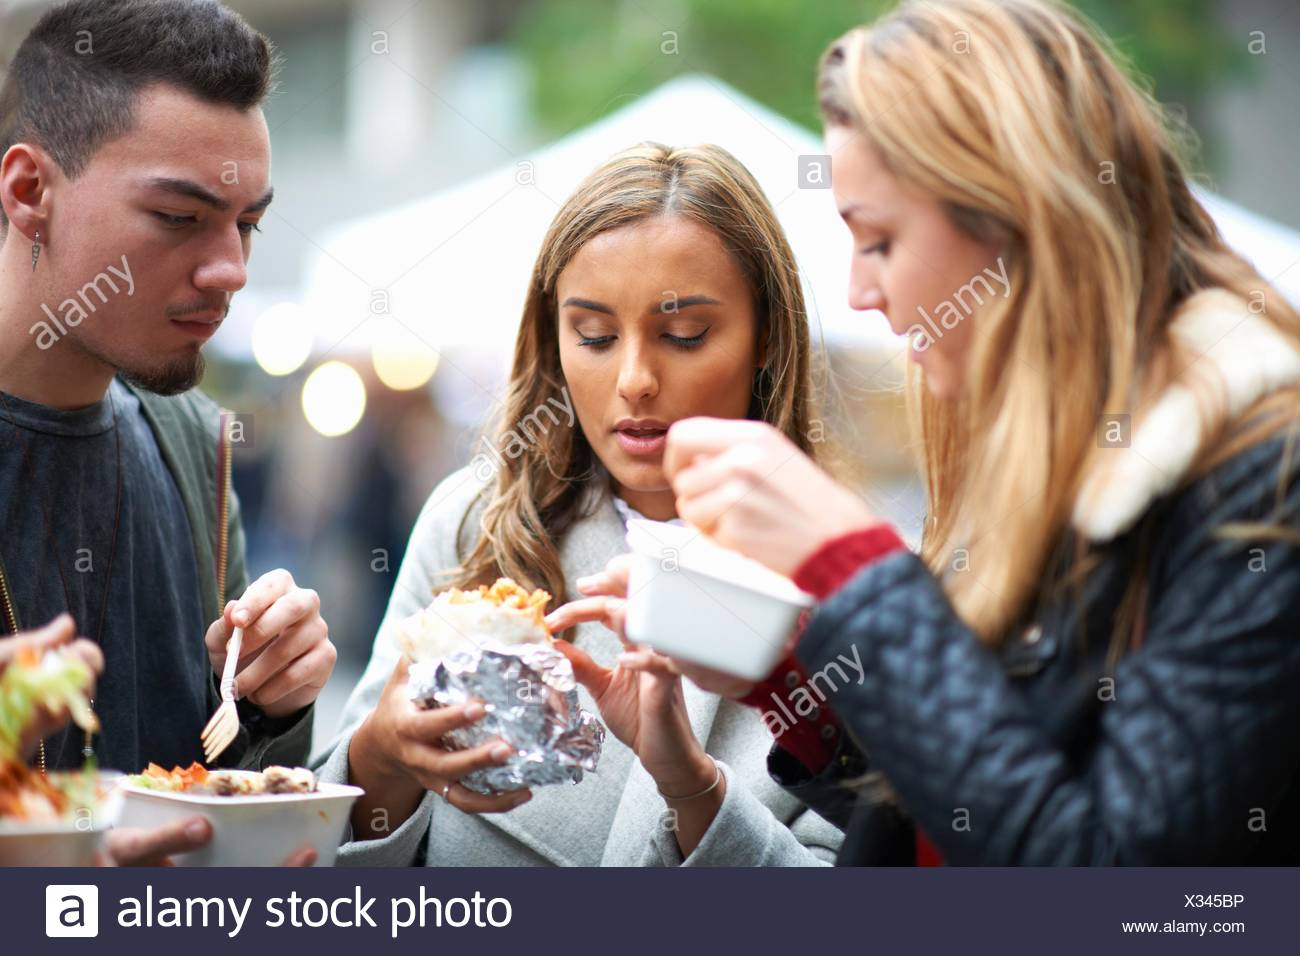 Group of young adults eating takeaway food, outdoors Stock Photo